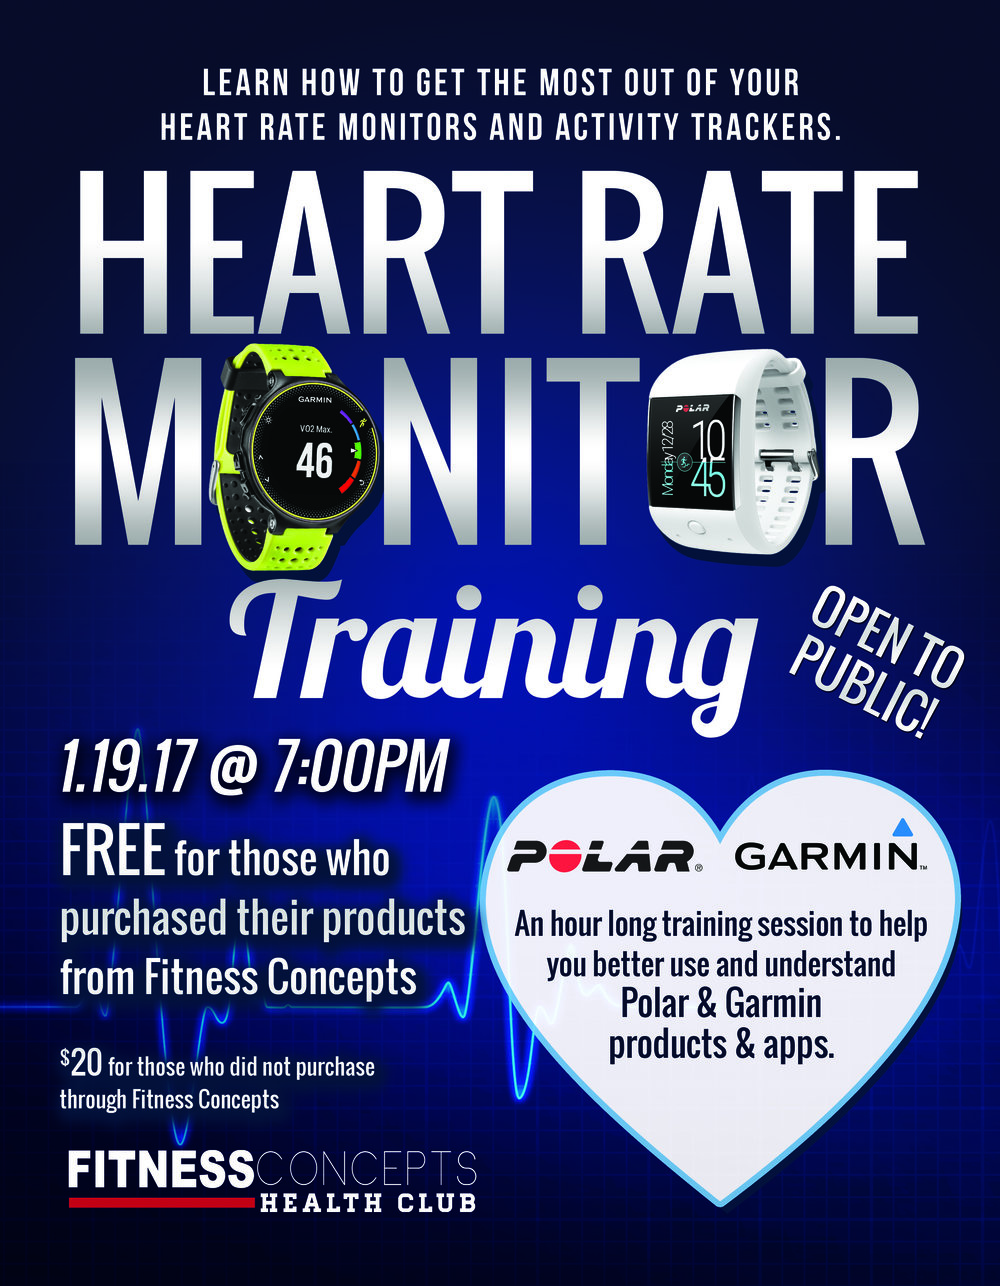 heartrate_monitor_training.jpg